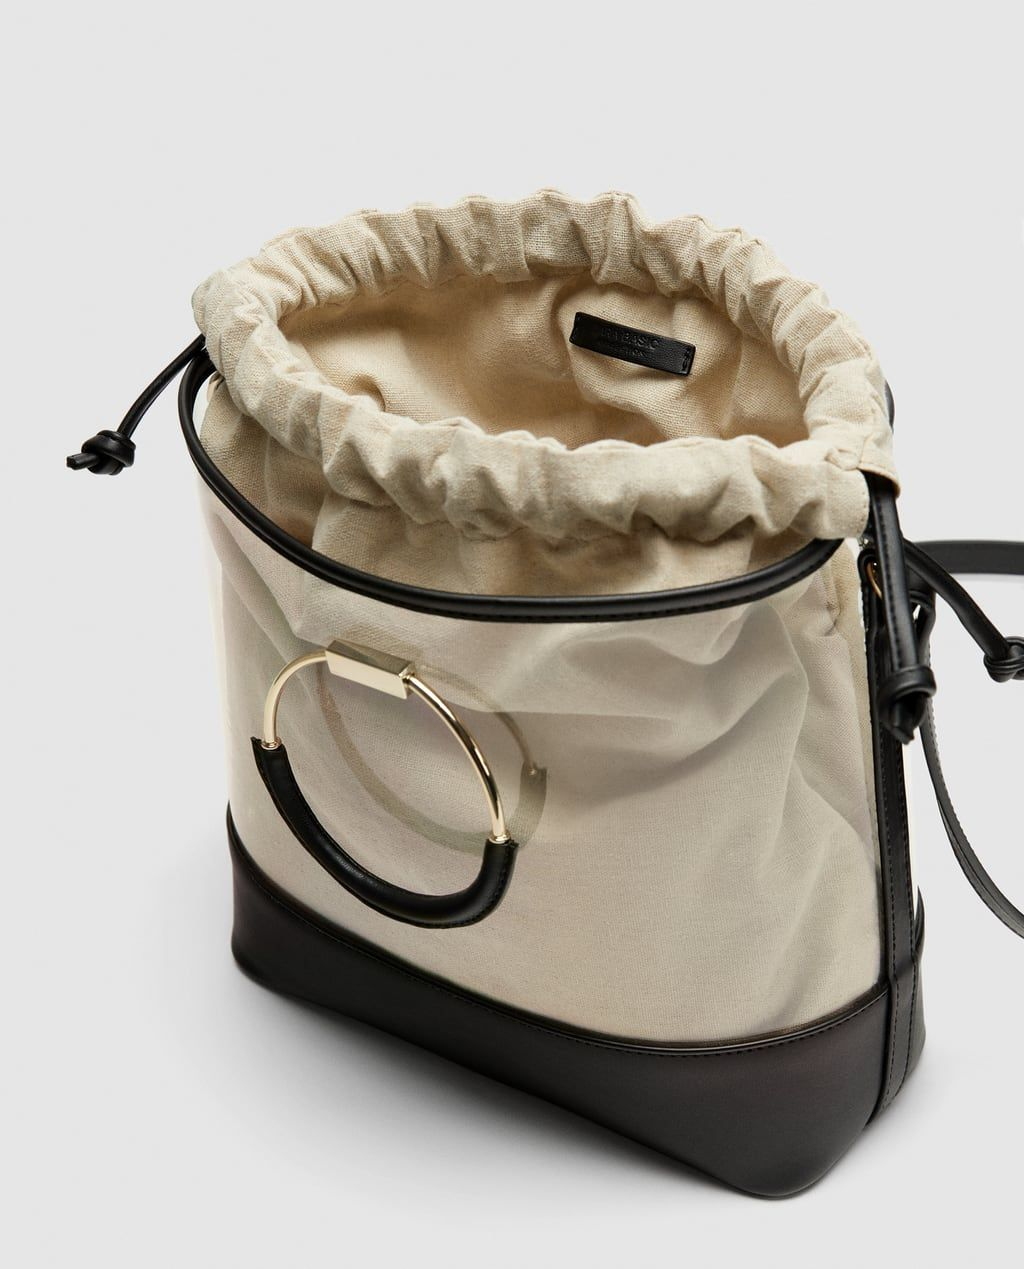 97a25a9073e0 VINYL TOTE WITH INTERIOR BAG-View all-BAGS-WOMAN